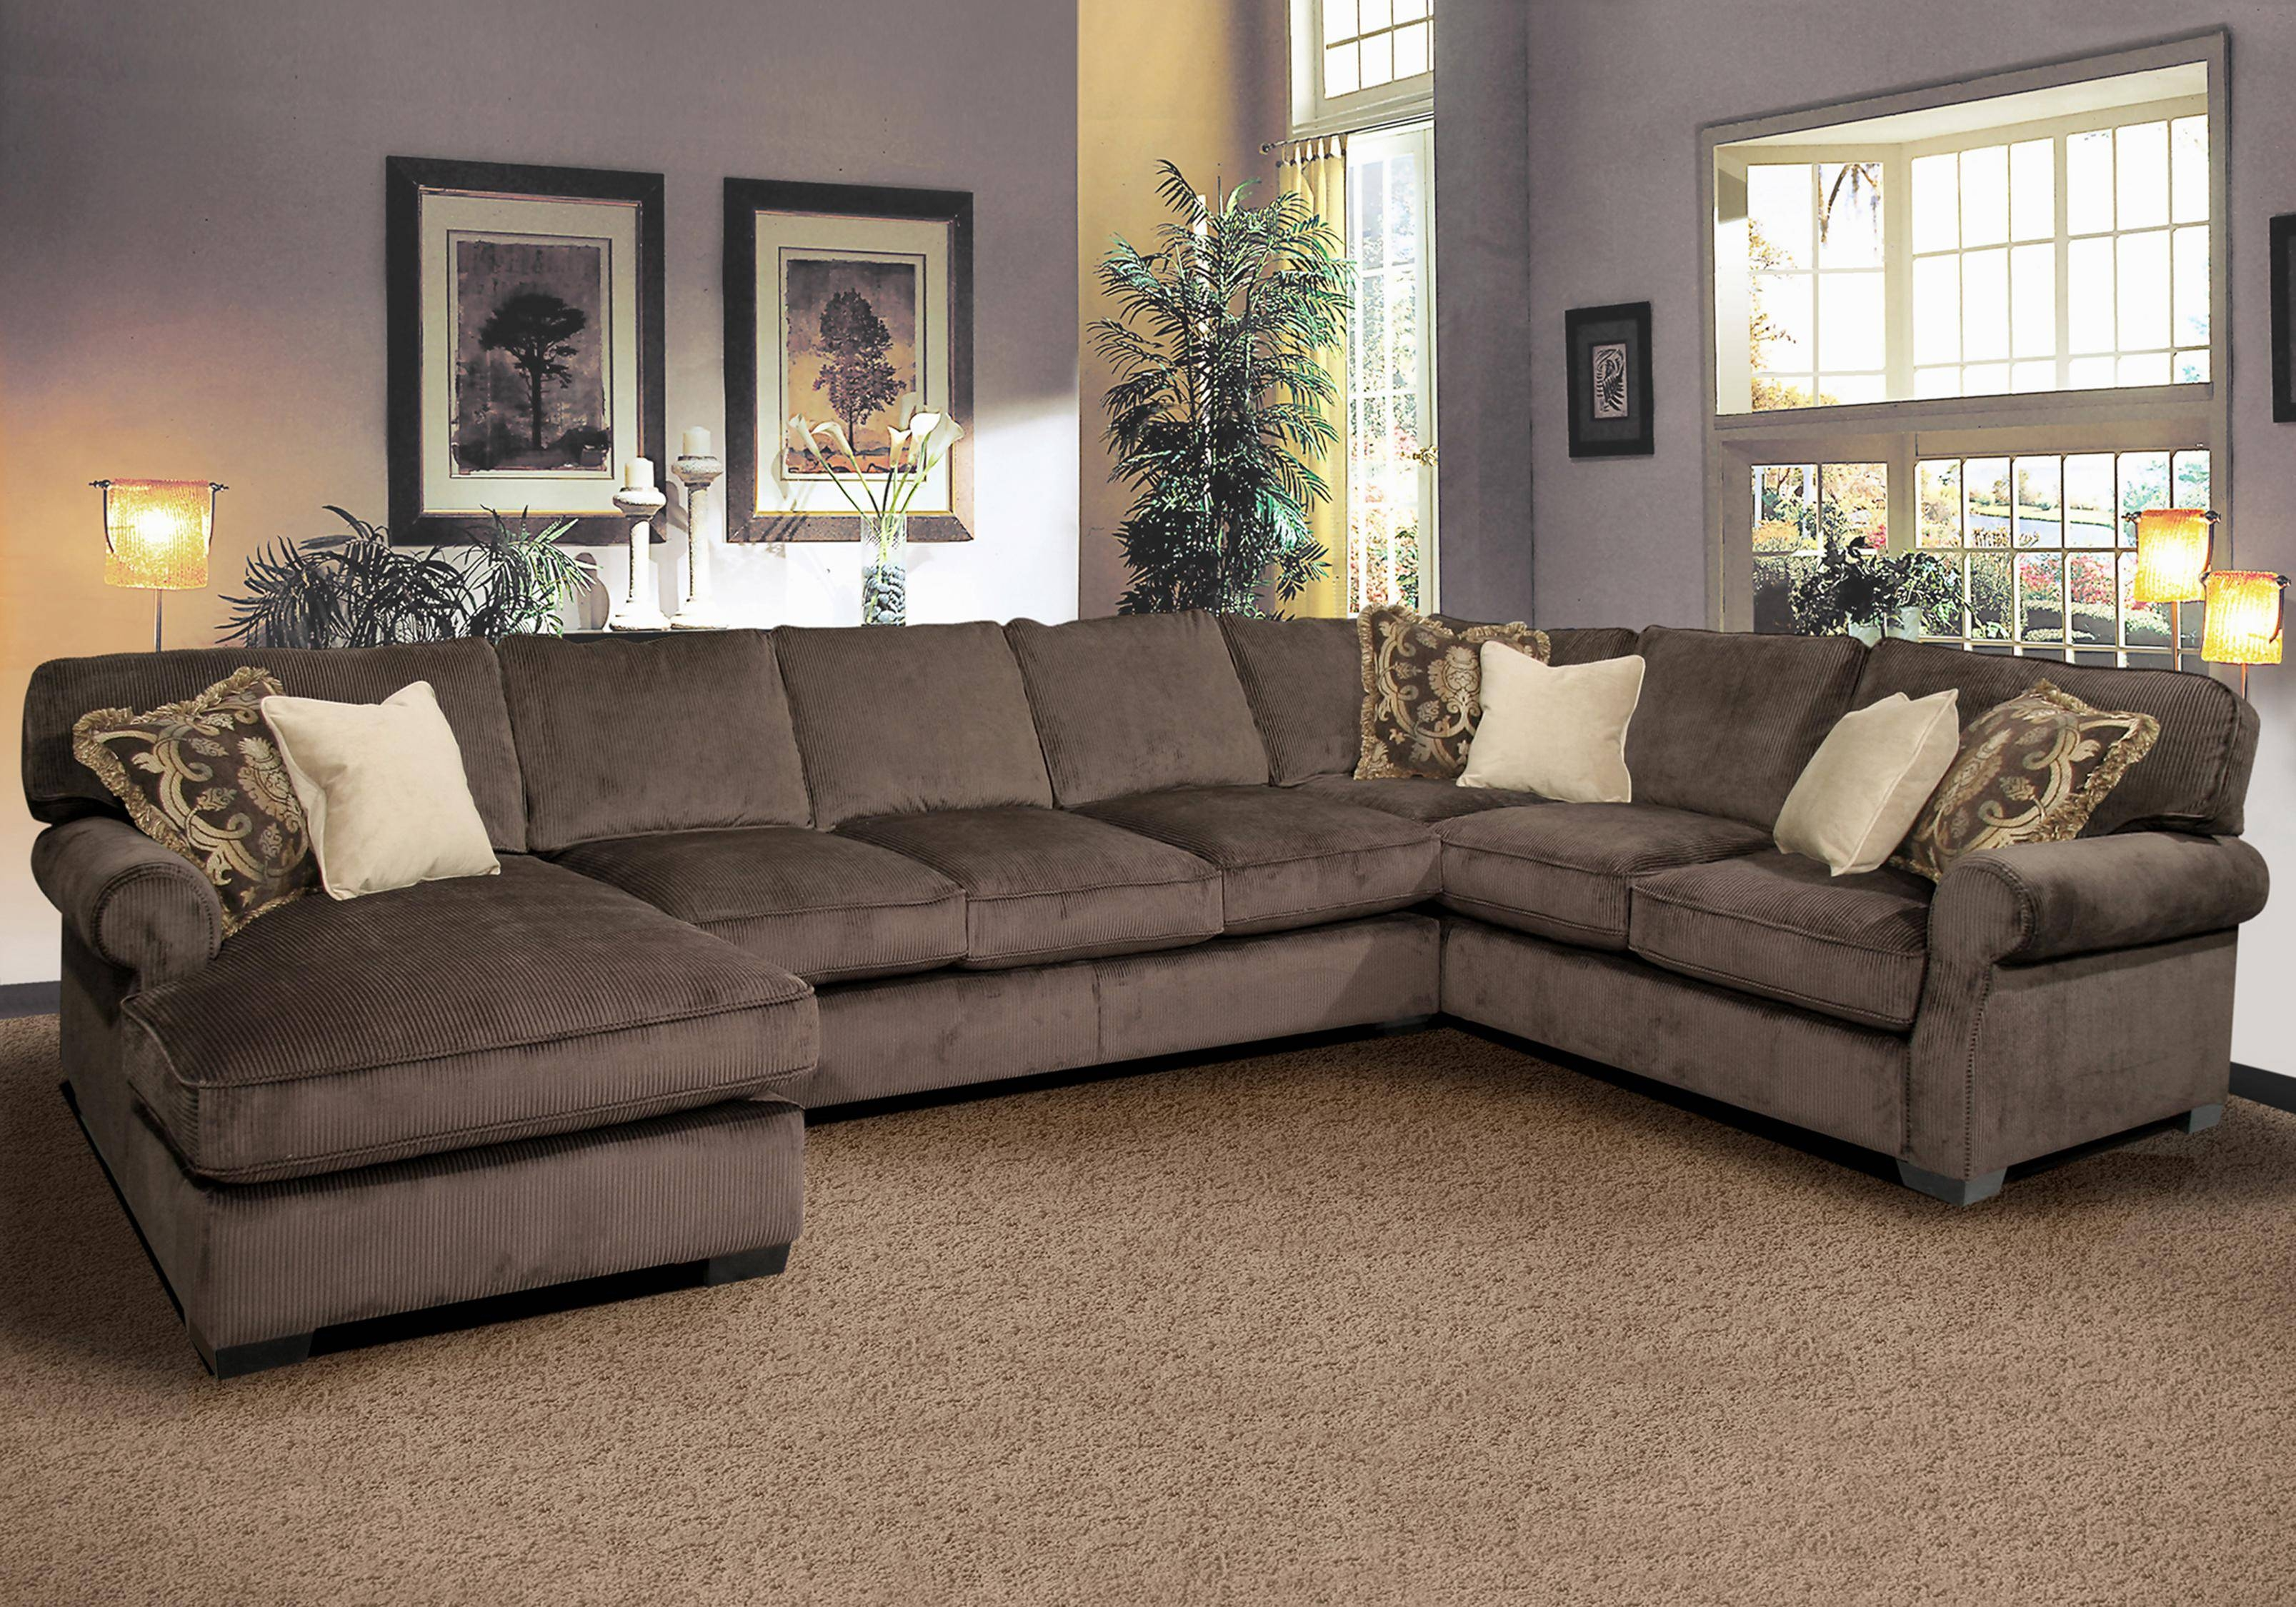 Sofa : Amazing 7 Seat Sectional Sofa Home Design Ideas Cool In 7 inside 7 Seat Sectional Sofa (Image 18 of 30)